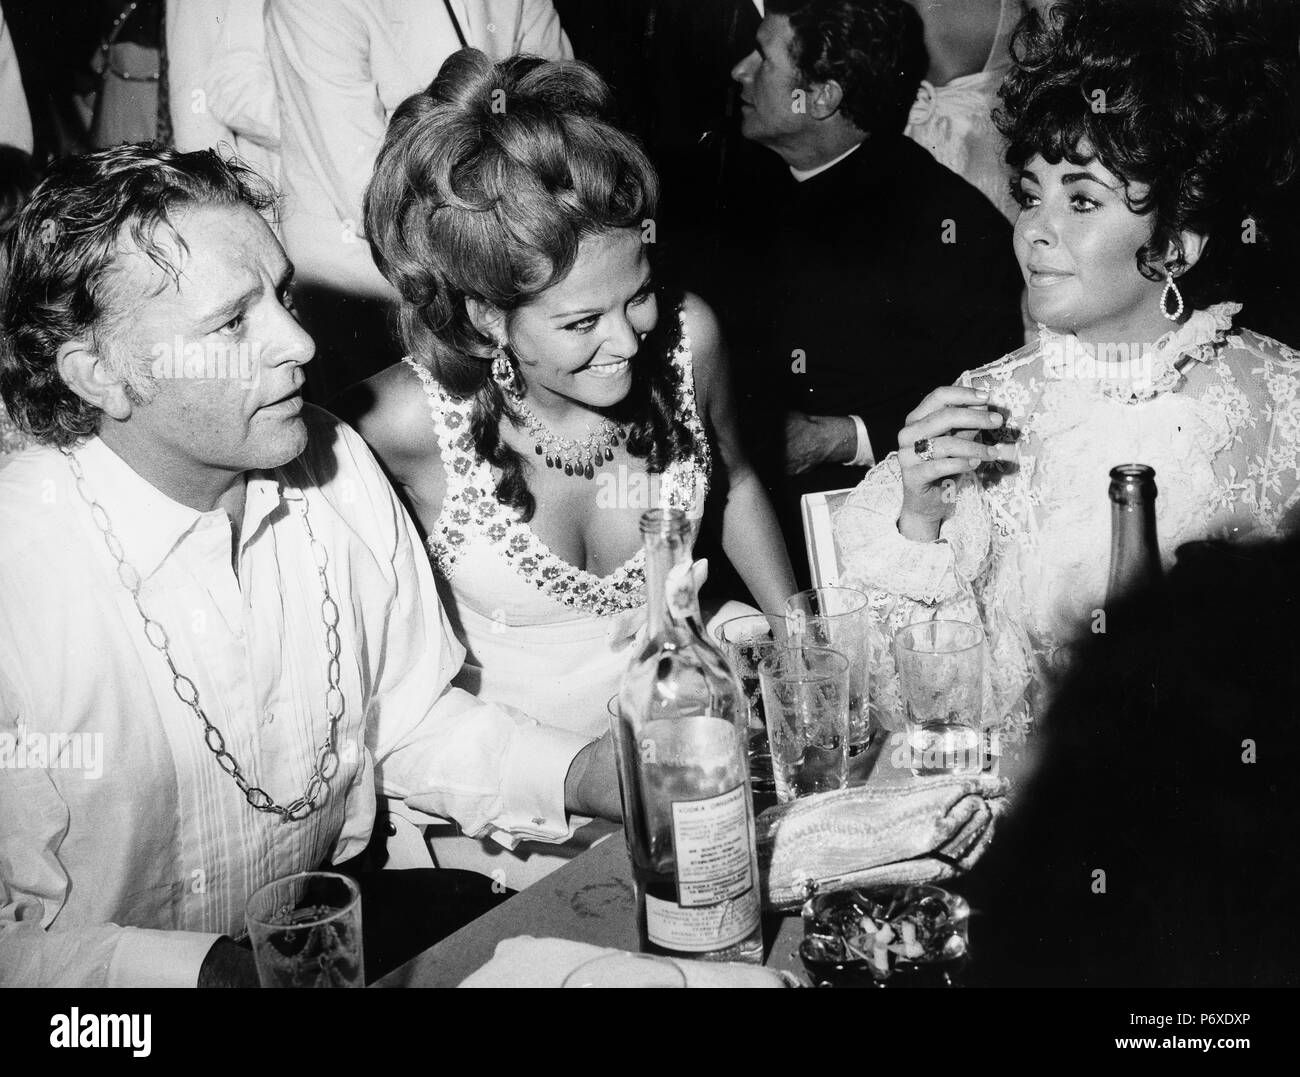 richard burton, claudia cardinale, liz taylor, party, venice film festival 1962 - Stock Image